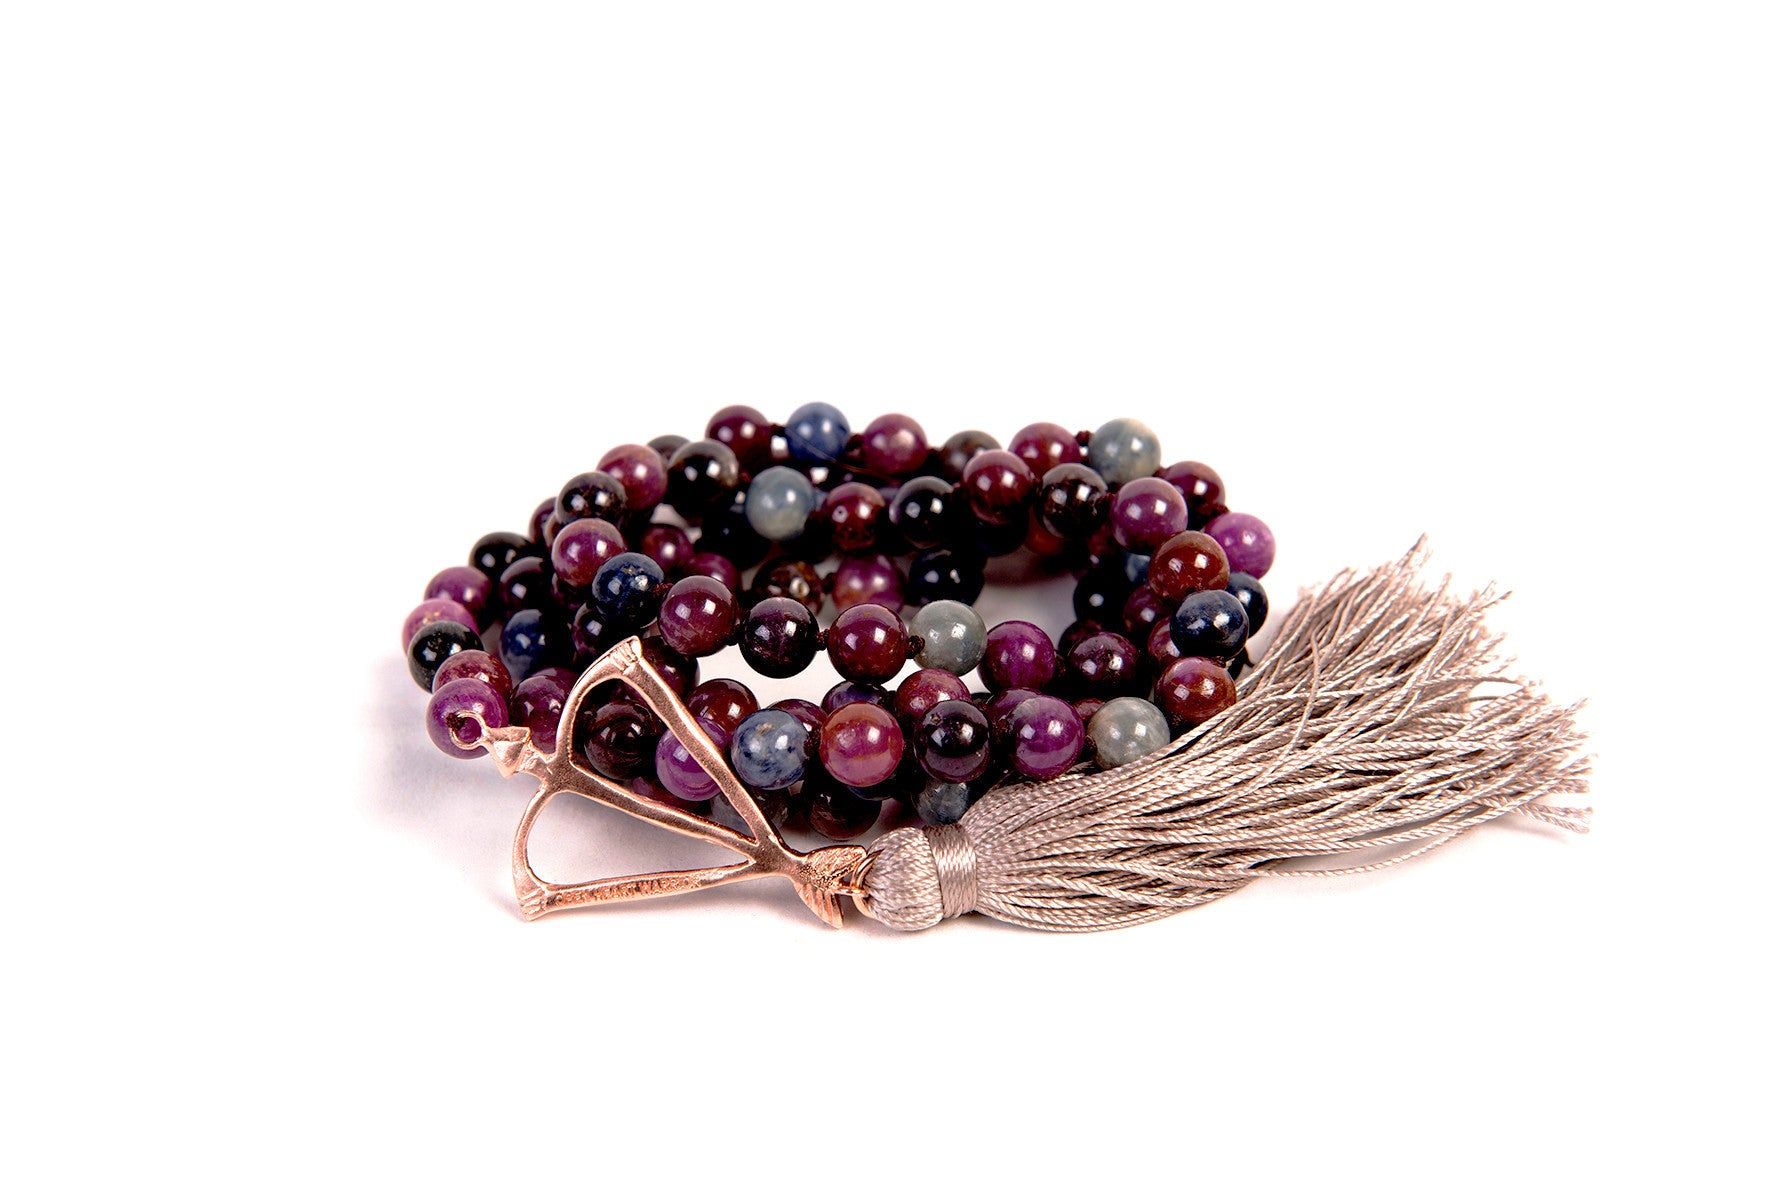 Solid 14k Gold Open Heart Warrior Genuine Ruby and Sapphire Ultimate Power Goddess 108 Mala